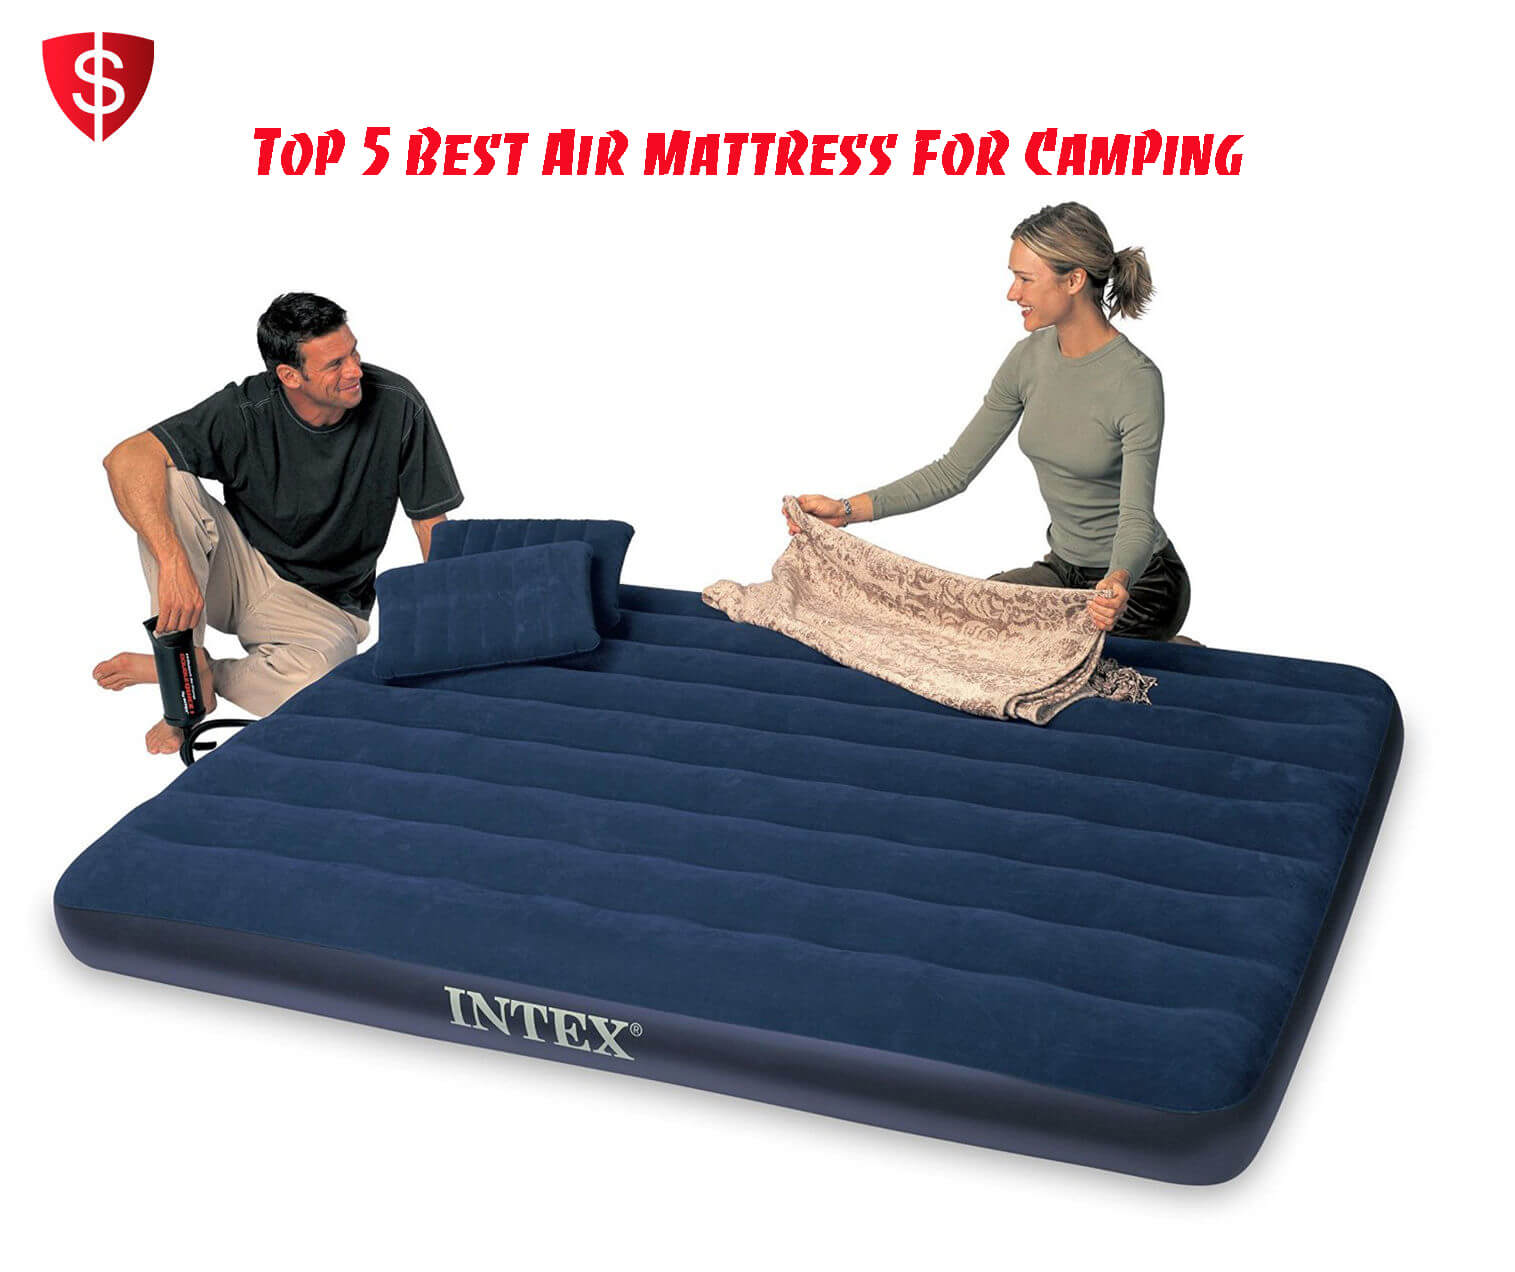 Top 5 The Best Air Mattress For Camping